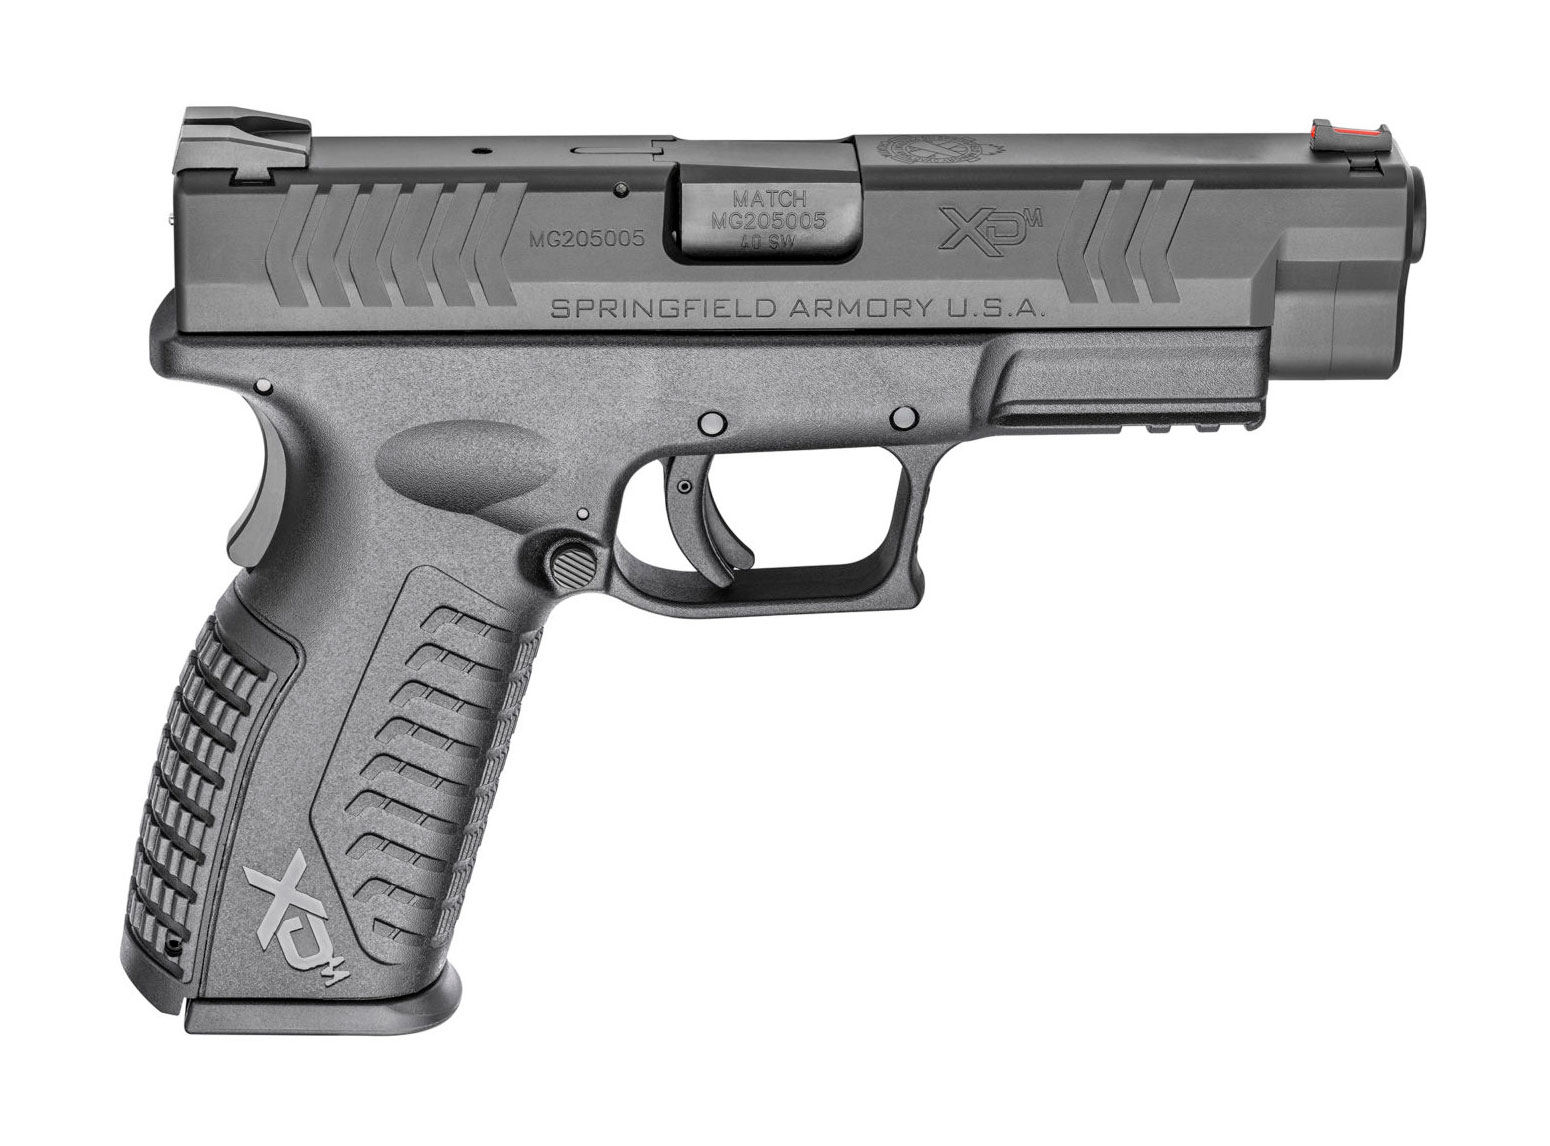 Springfield Armory XD-M pistol, side view